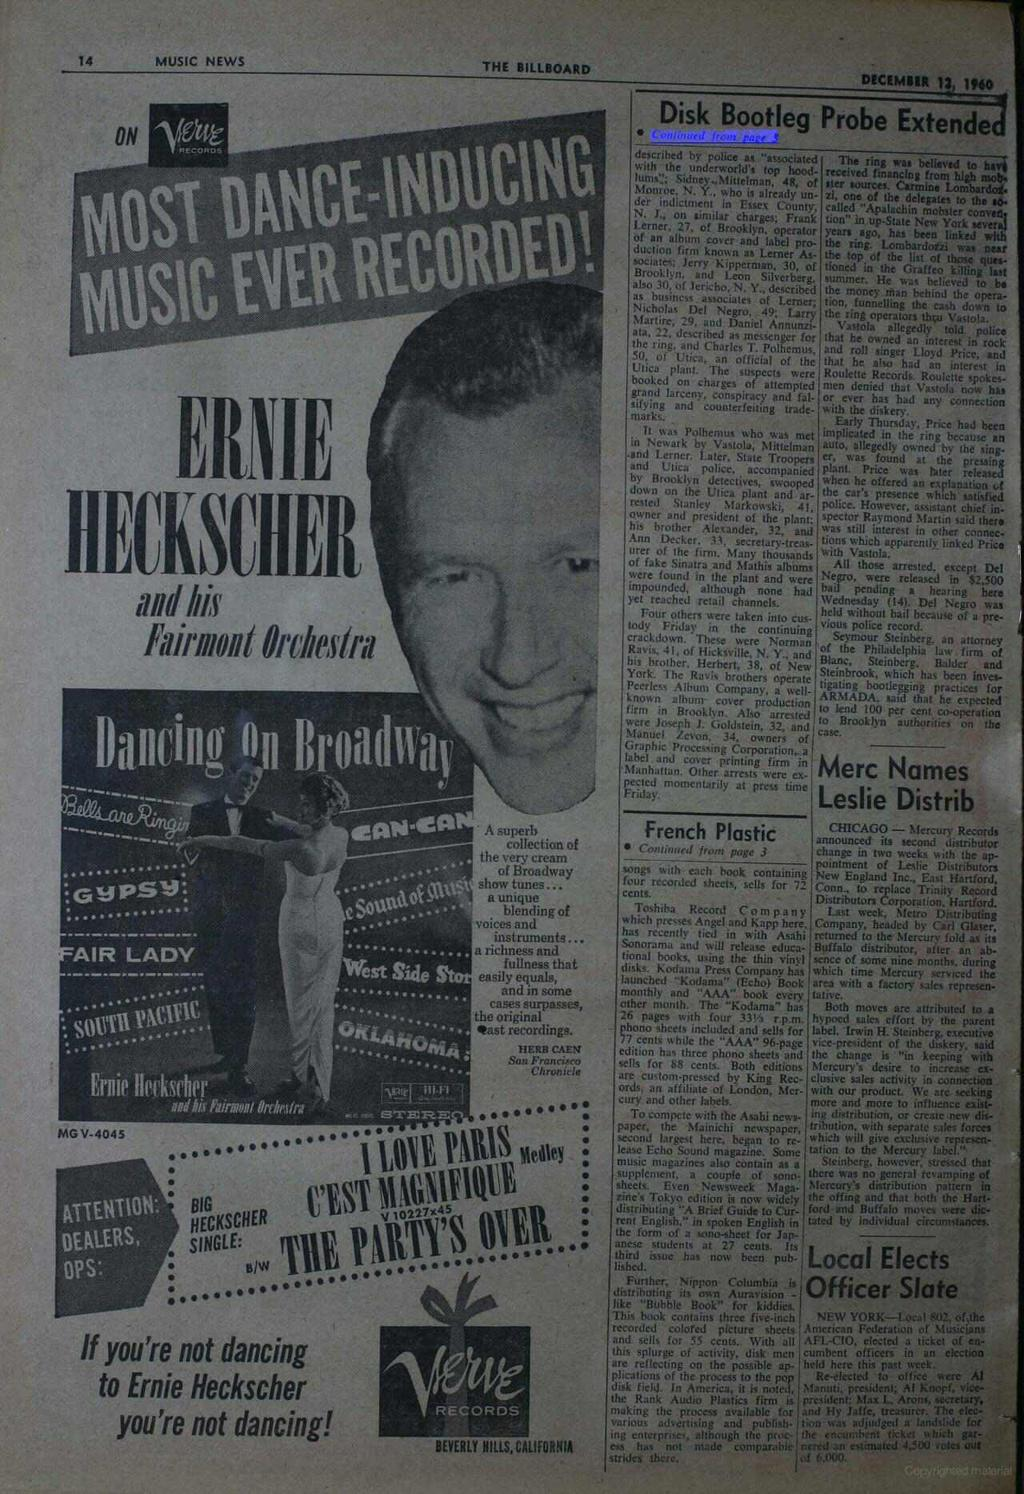 14 MUSIC NEWS THE BILLBOARD DECEMBER 13, 1960 Disk Bootleg Probe Extended ERNIE IIEUKSFIIER and his IGgPSv:....... AIR LADY MG V-4045 Ñiiiiìtìiìi Onhsini Ernie Heasrhrri aedbis &rmot Orfárllra r.